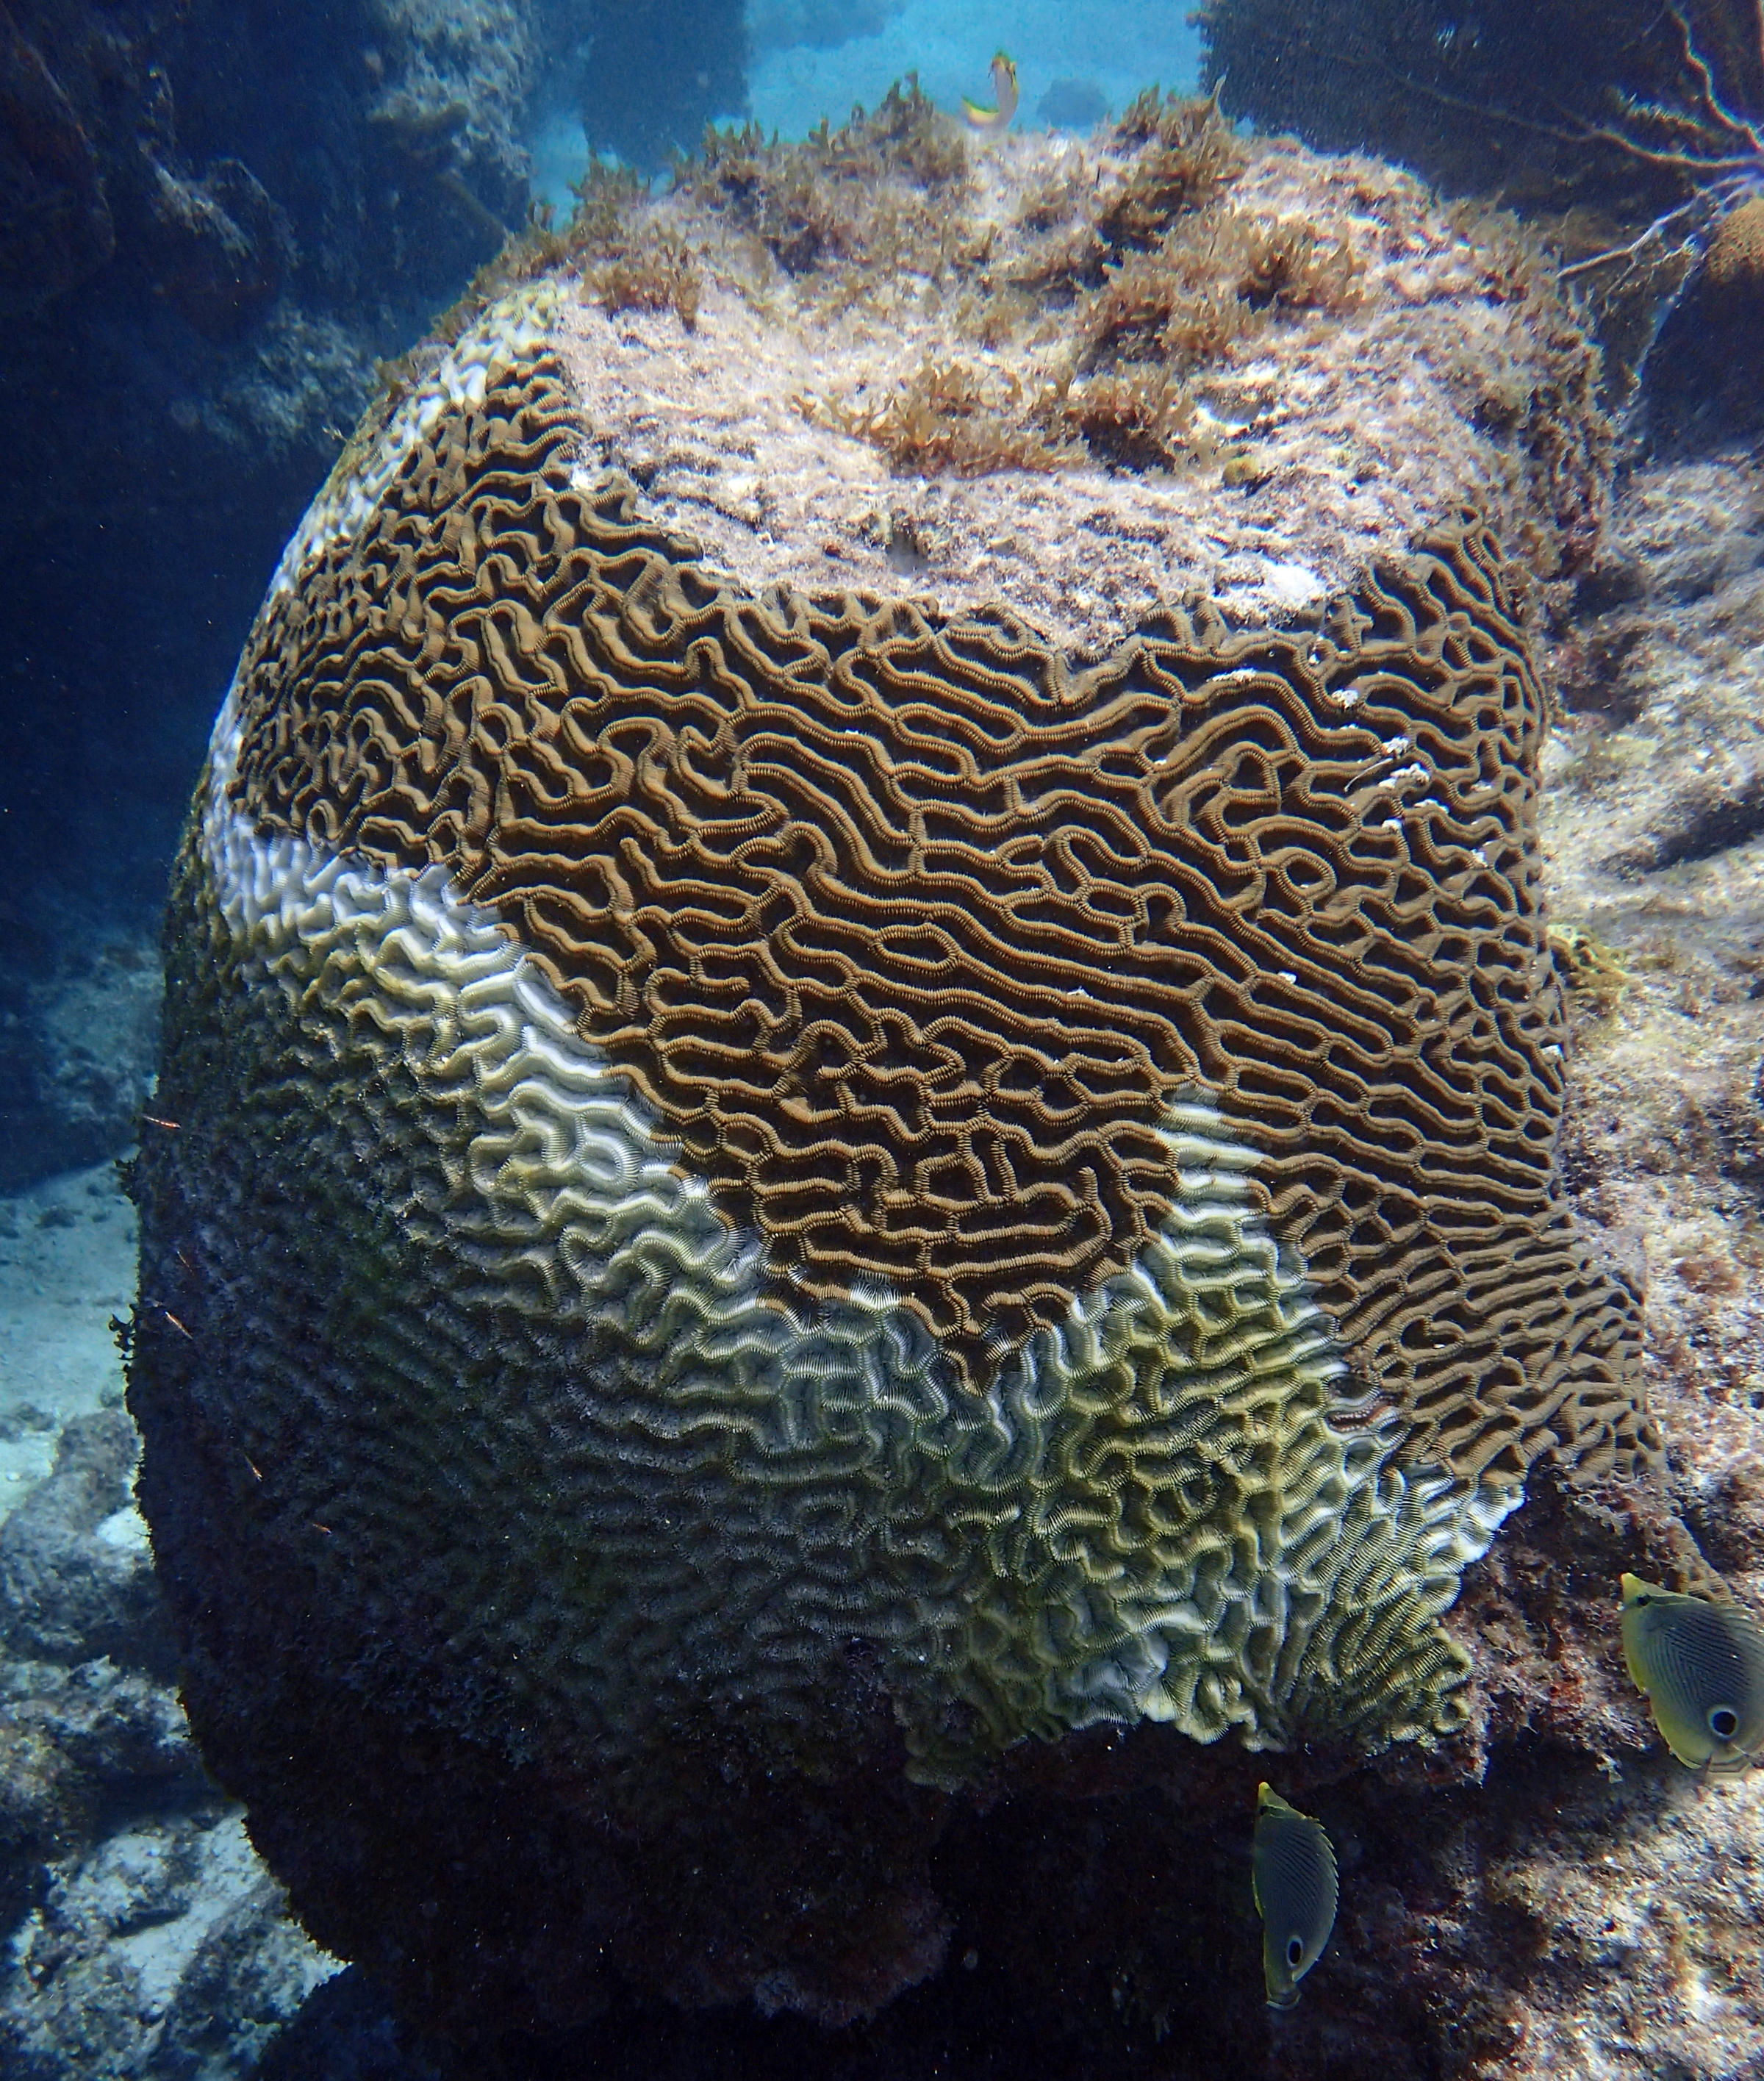 Latest Disease A Serious Threat To Florida's Reefs, But